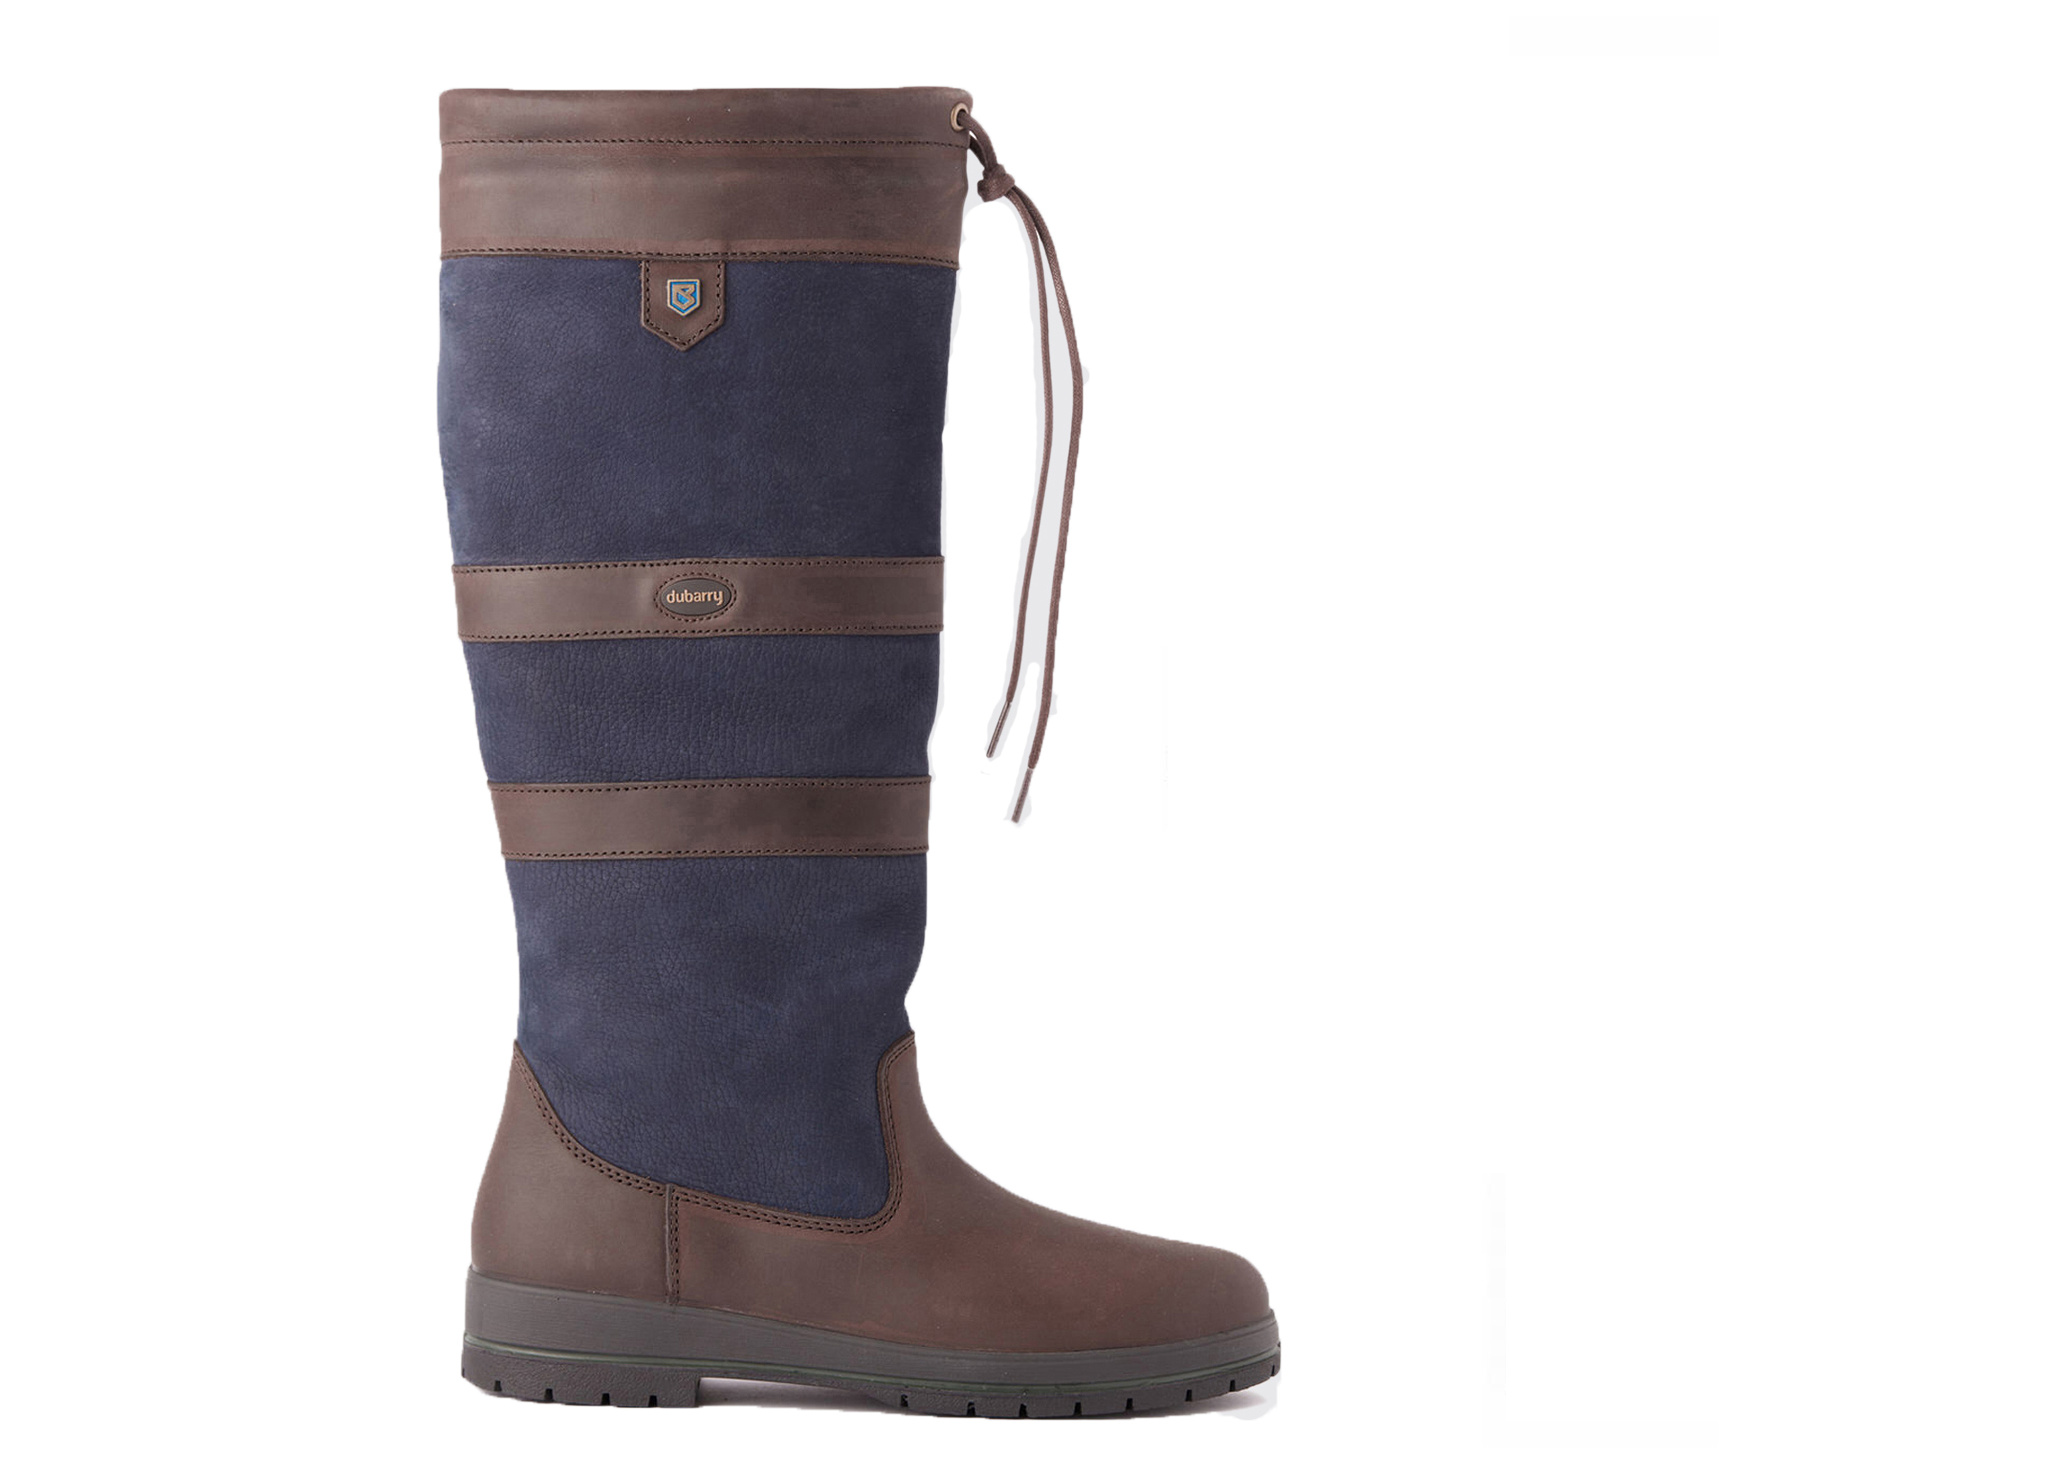 Dubarry Dubarry laars ExtraFit 393132 Galway Navy/ Brown